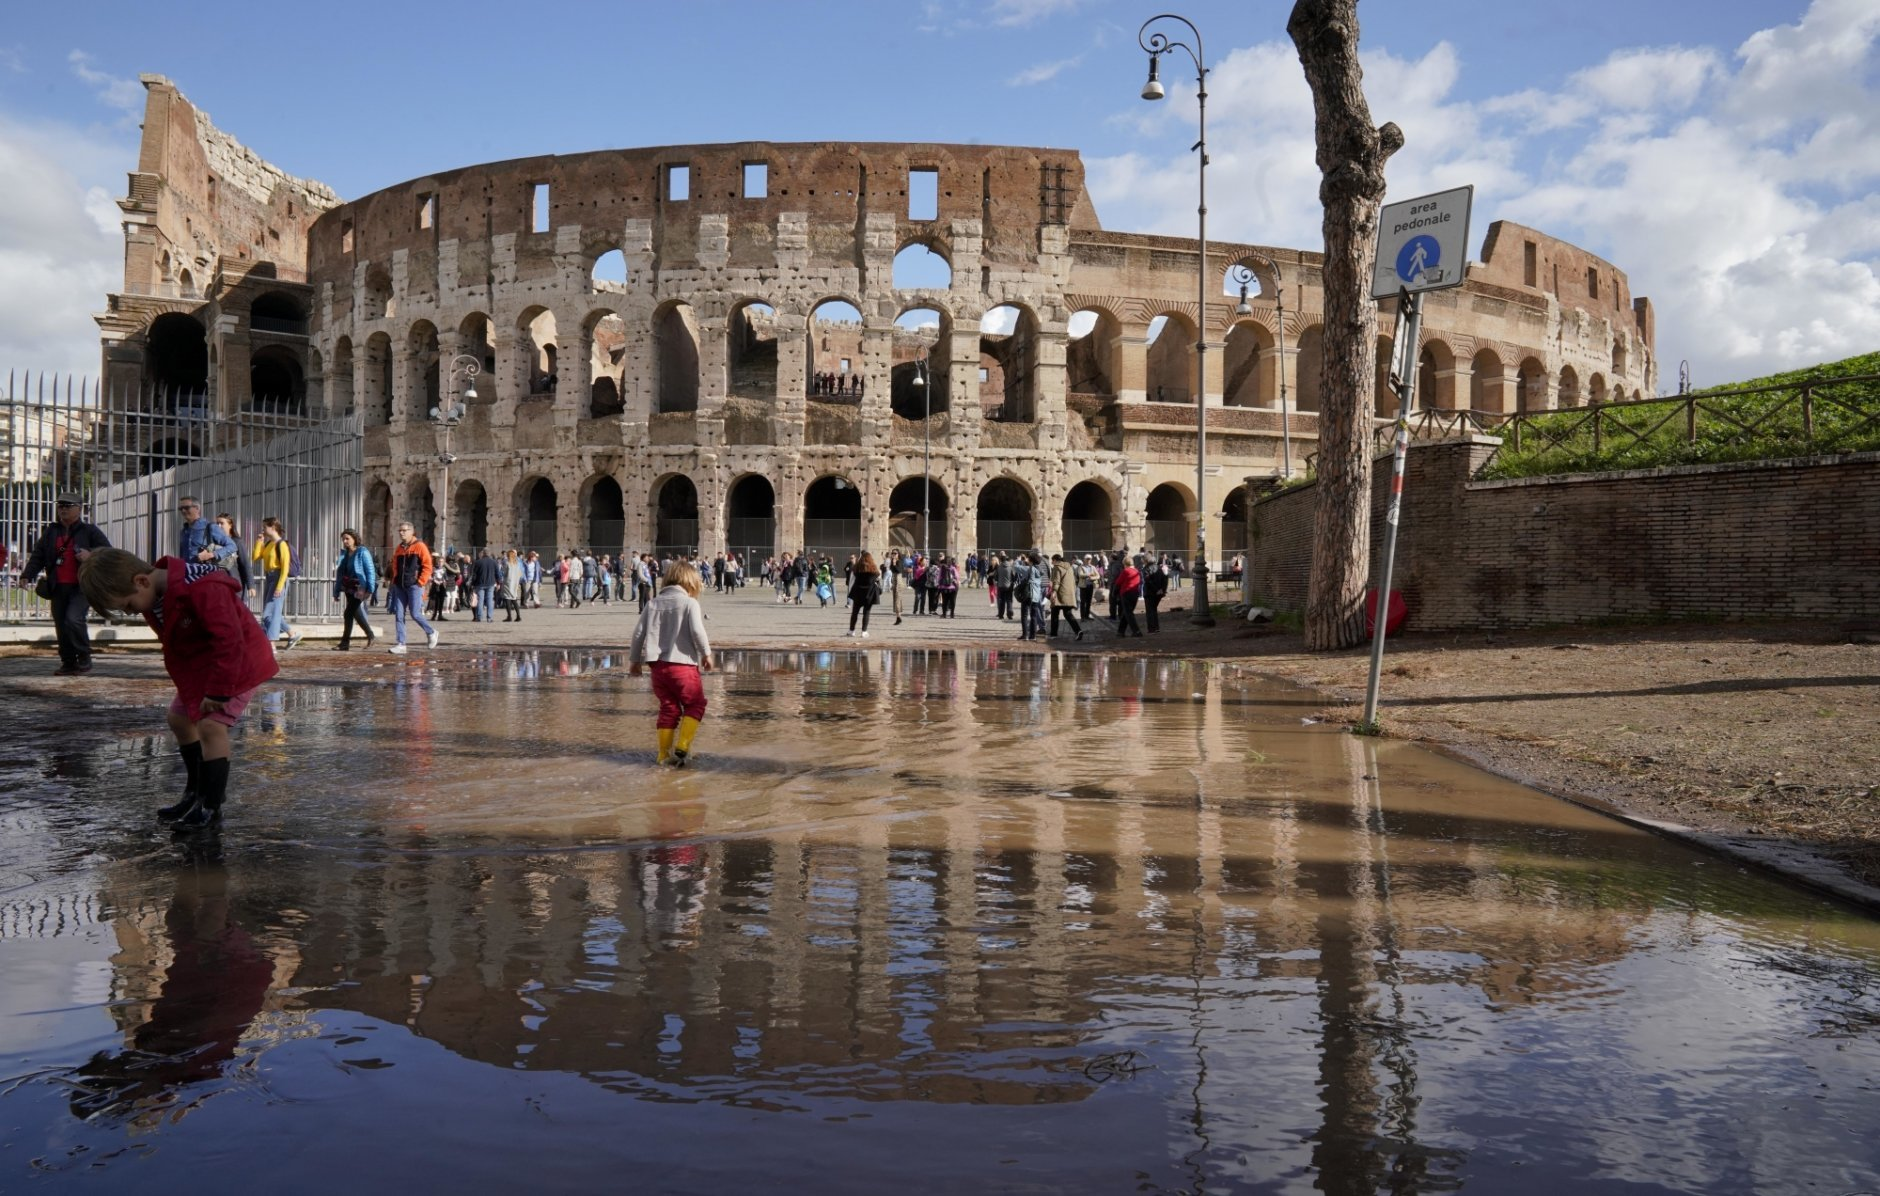 """Children play in a puddle by the ancient Colosseum a day after strong winds and rain hit the city, in Rome, Tuesday, Oct. 30, 2018. The national Civil Protection Agency has issued red and orange alerts -- meaning possible """"loss of life"""" from landslides, floods, and infrastructural damage -- due to an Atlantic storm system that has brought torrential rains and hail, electrical storms, powerful winds and high seas to Italy from North to South. (AP Photo/Andrew Medichini)"""